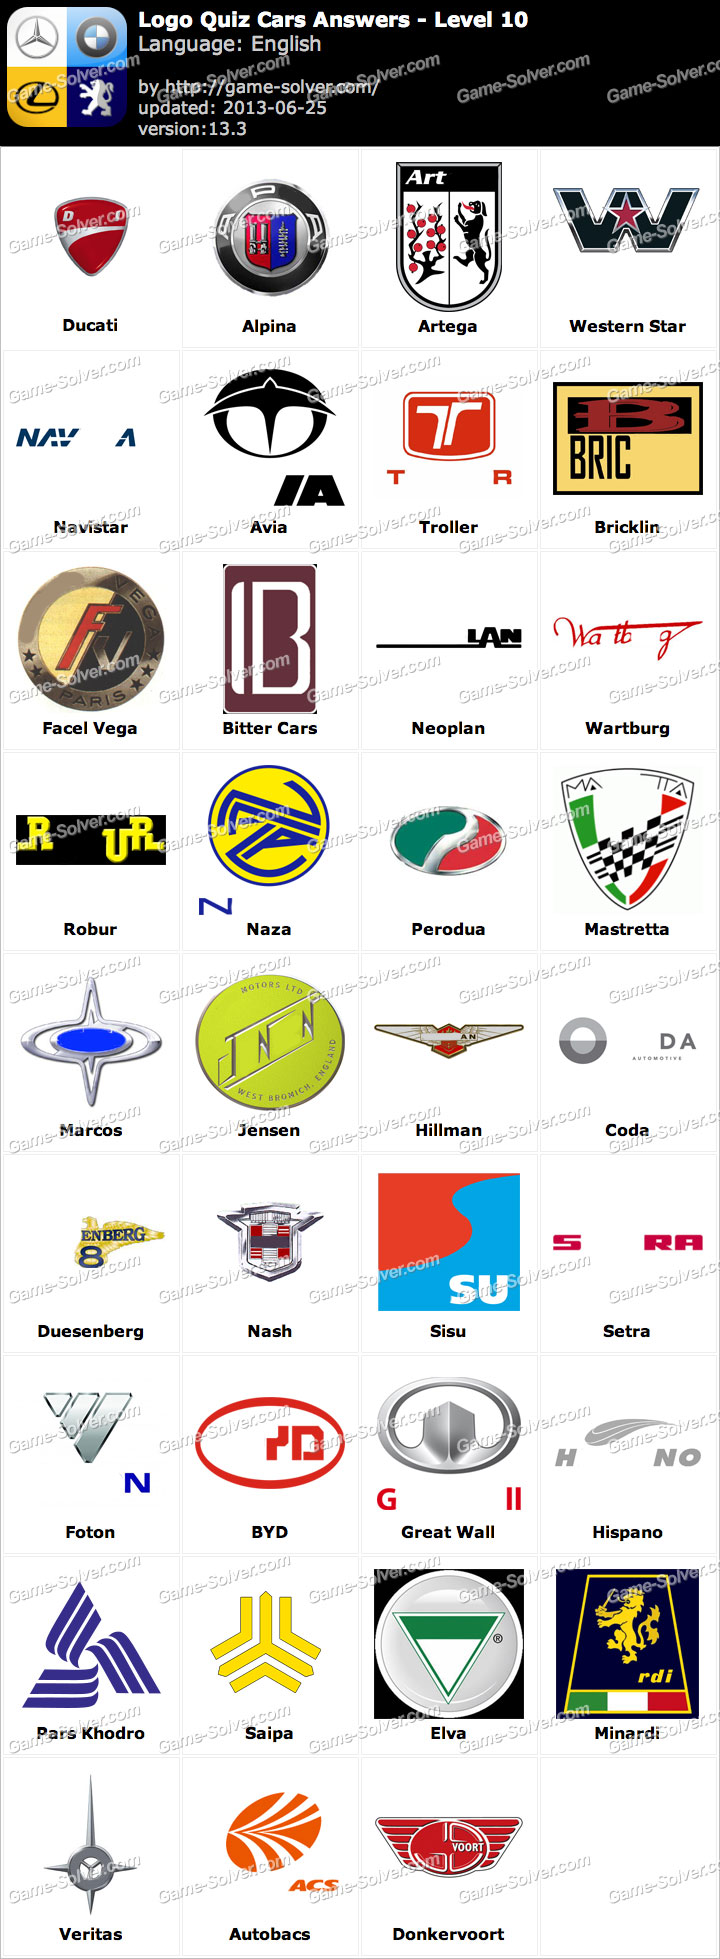 Logo Quiz Cars Answers Level 10 Game Solver